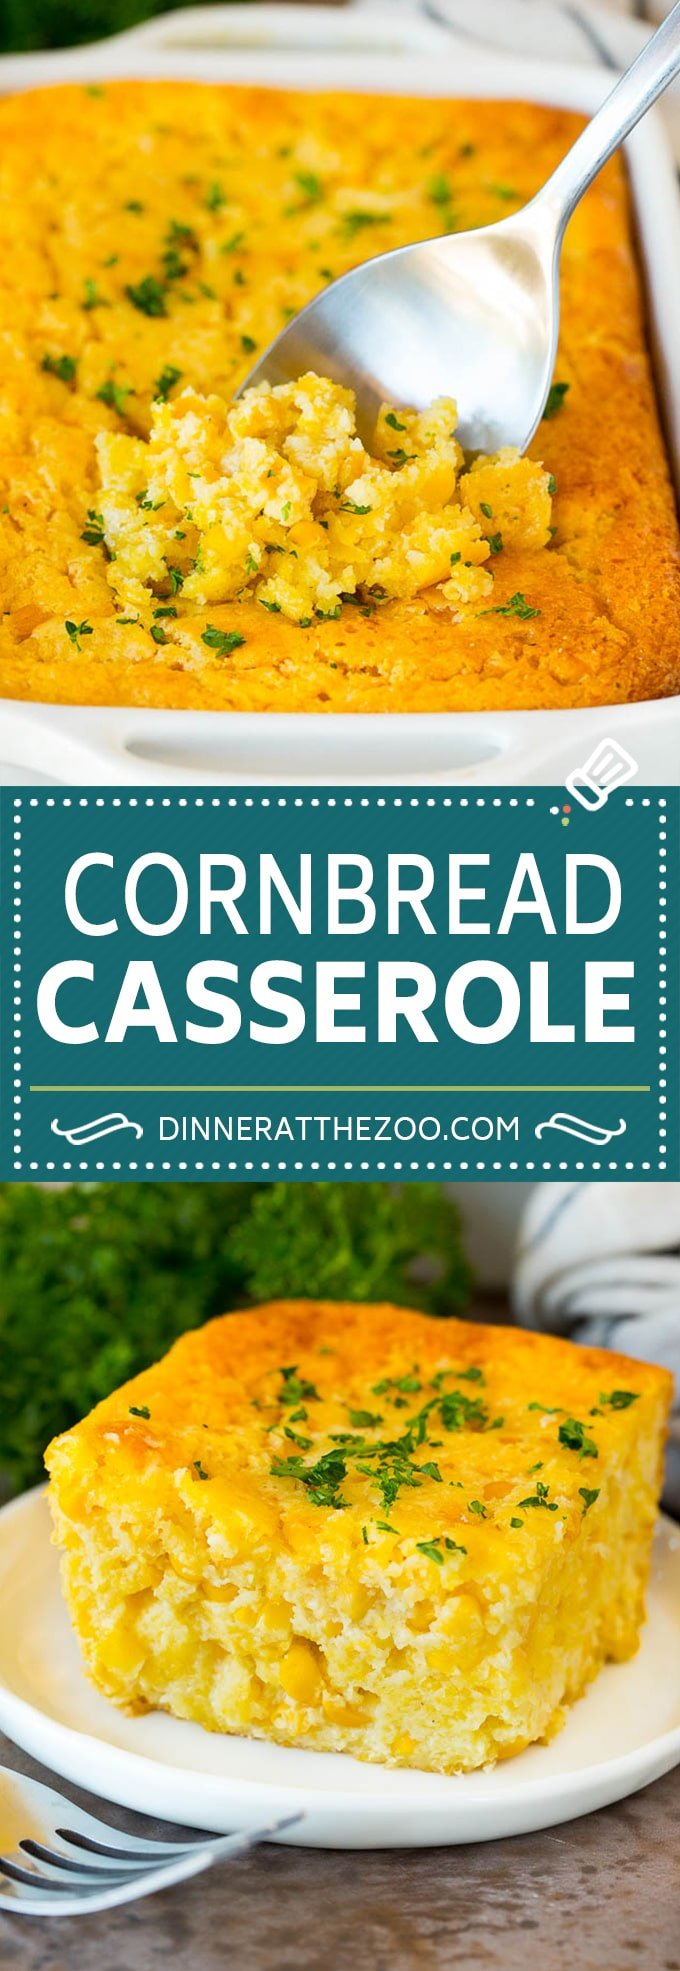 This cornbread casserole is a blend of corn muffin mix, canned corn, creamed corn, seasoning, eggs and butter, all baked together to make a hearty dish.